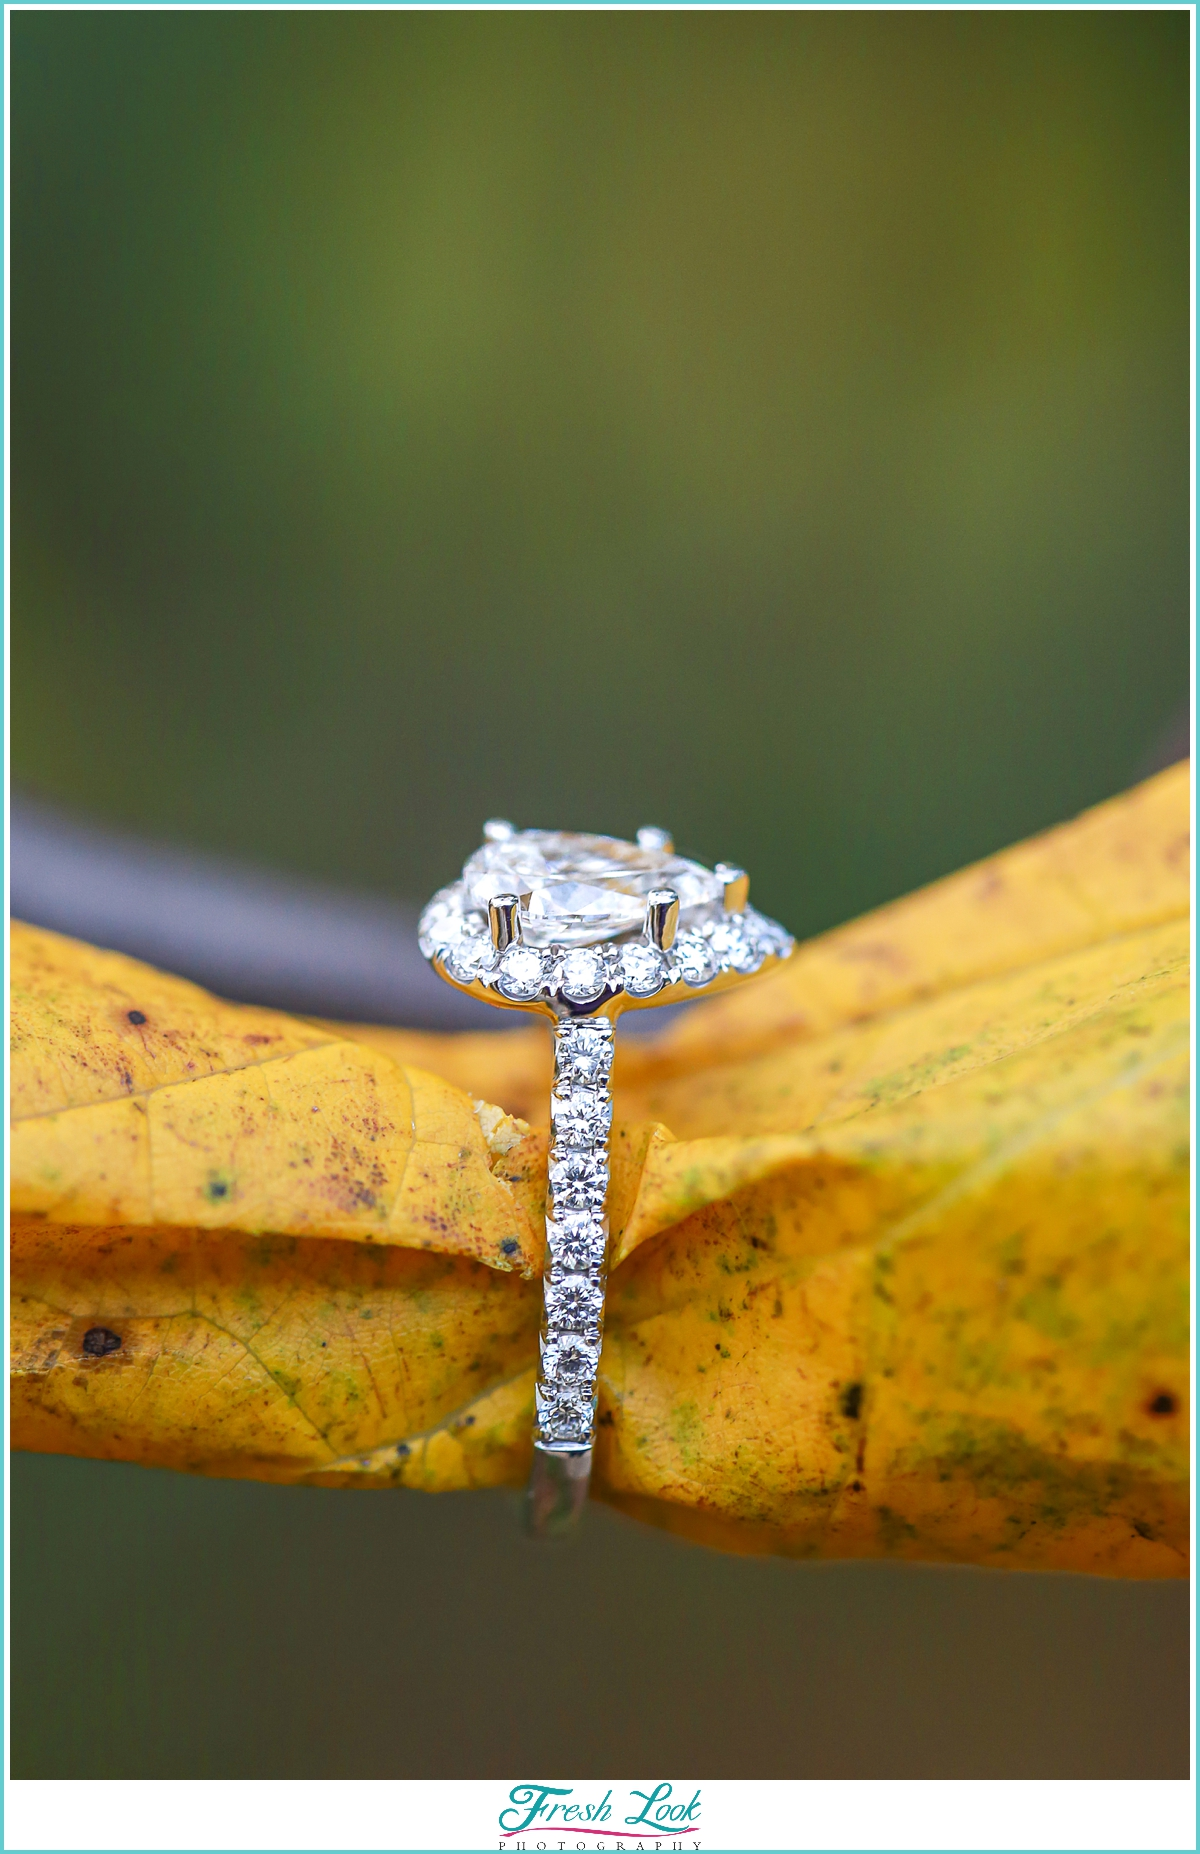 Diamond engagement ring details